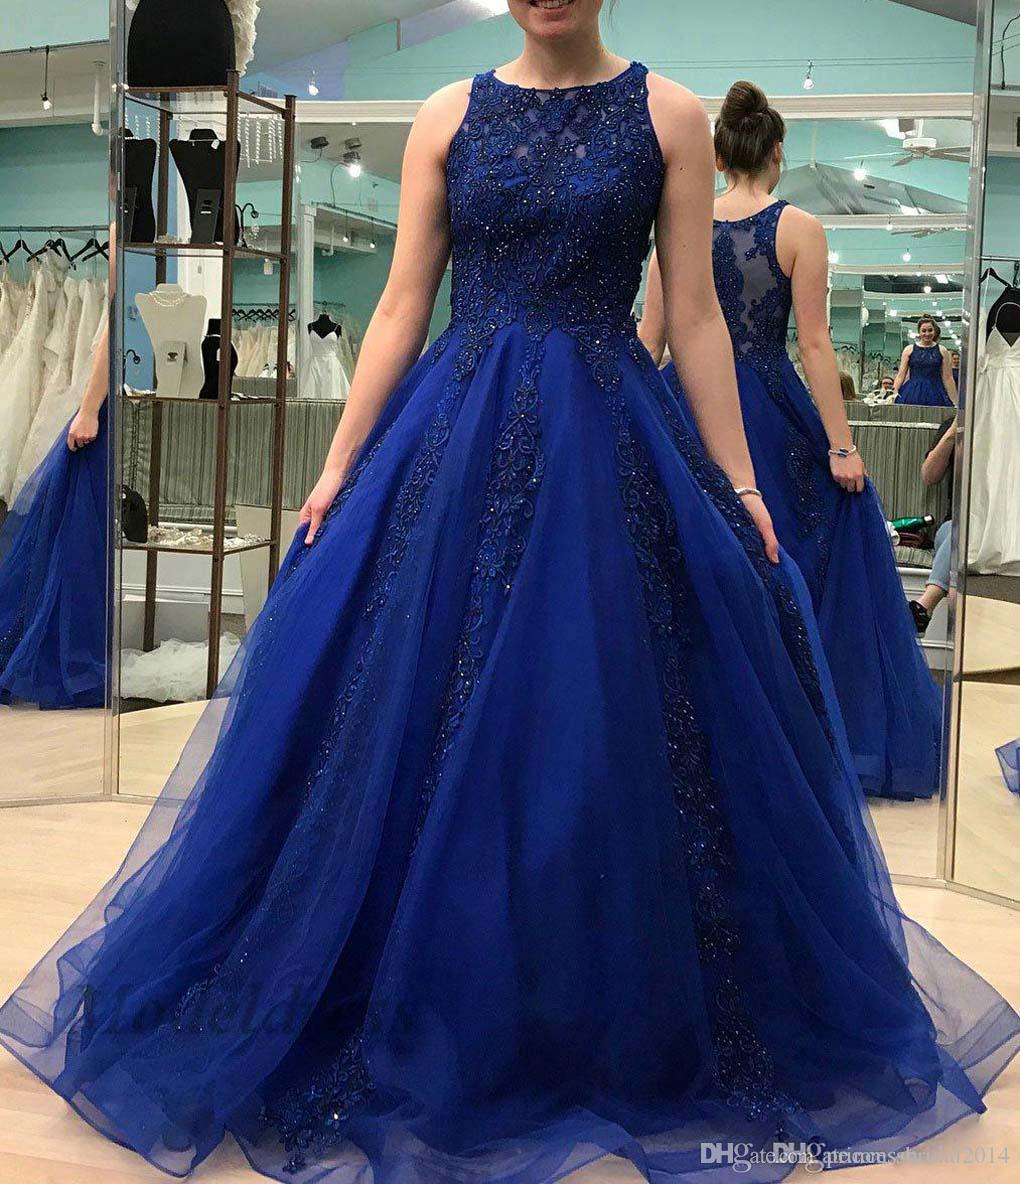 ZYLLGF Royal Blue Prom Dresses Ball Gown